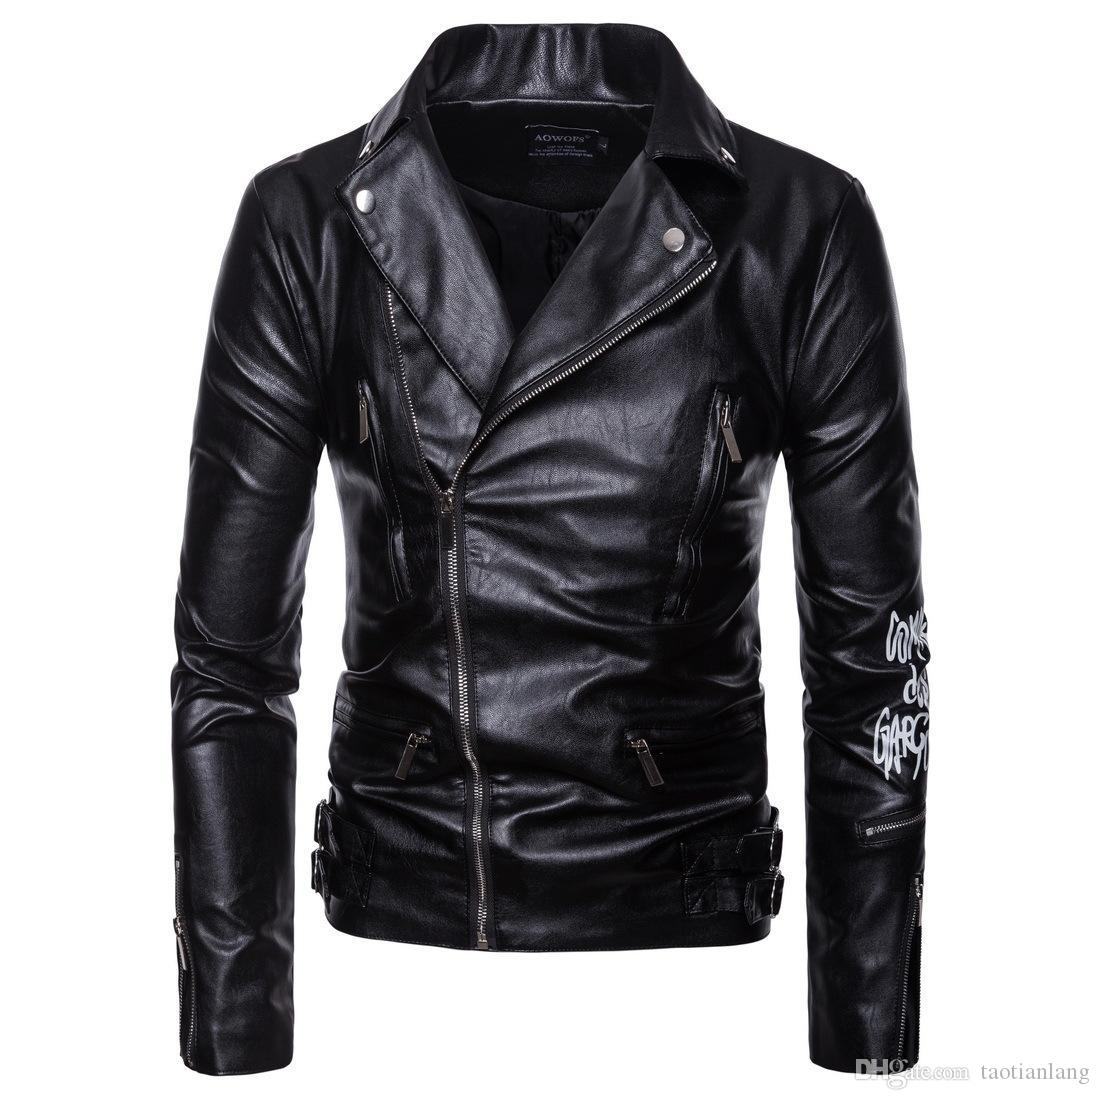 Men's Clothing Jackets Cheap Sale Plus Size 5xl Mens Leather Jacket Slim Fit Pu Biker Motorcycle Warm Bomber Coat Outwear Overcoat High Quality